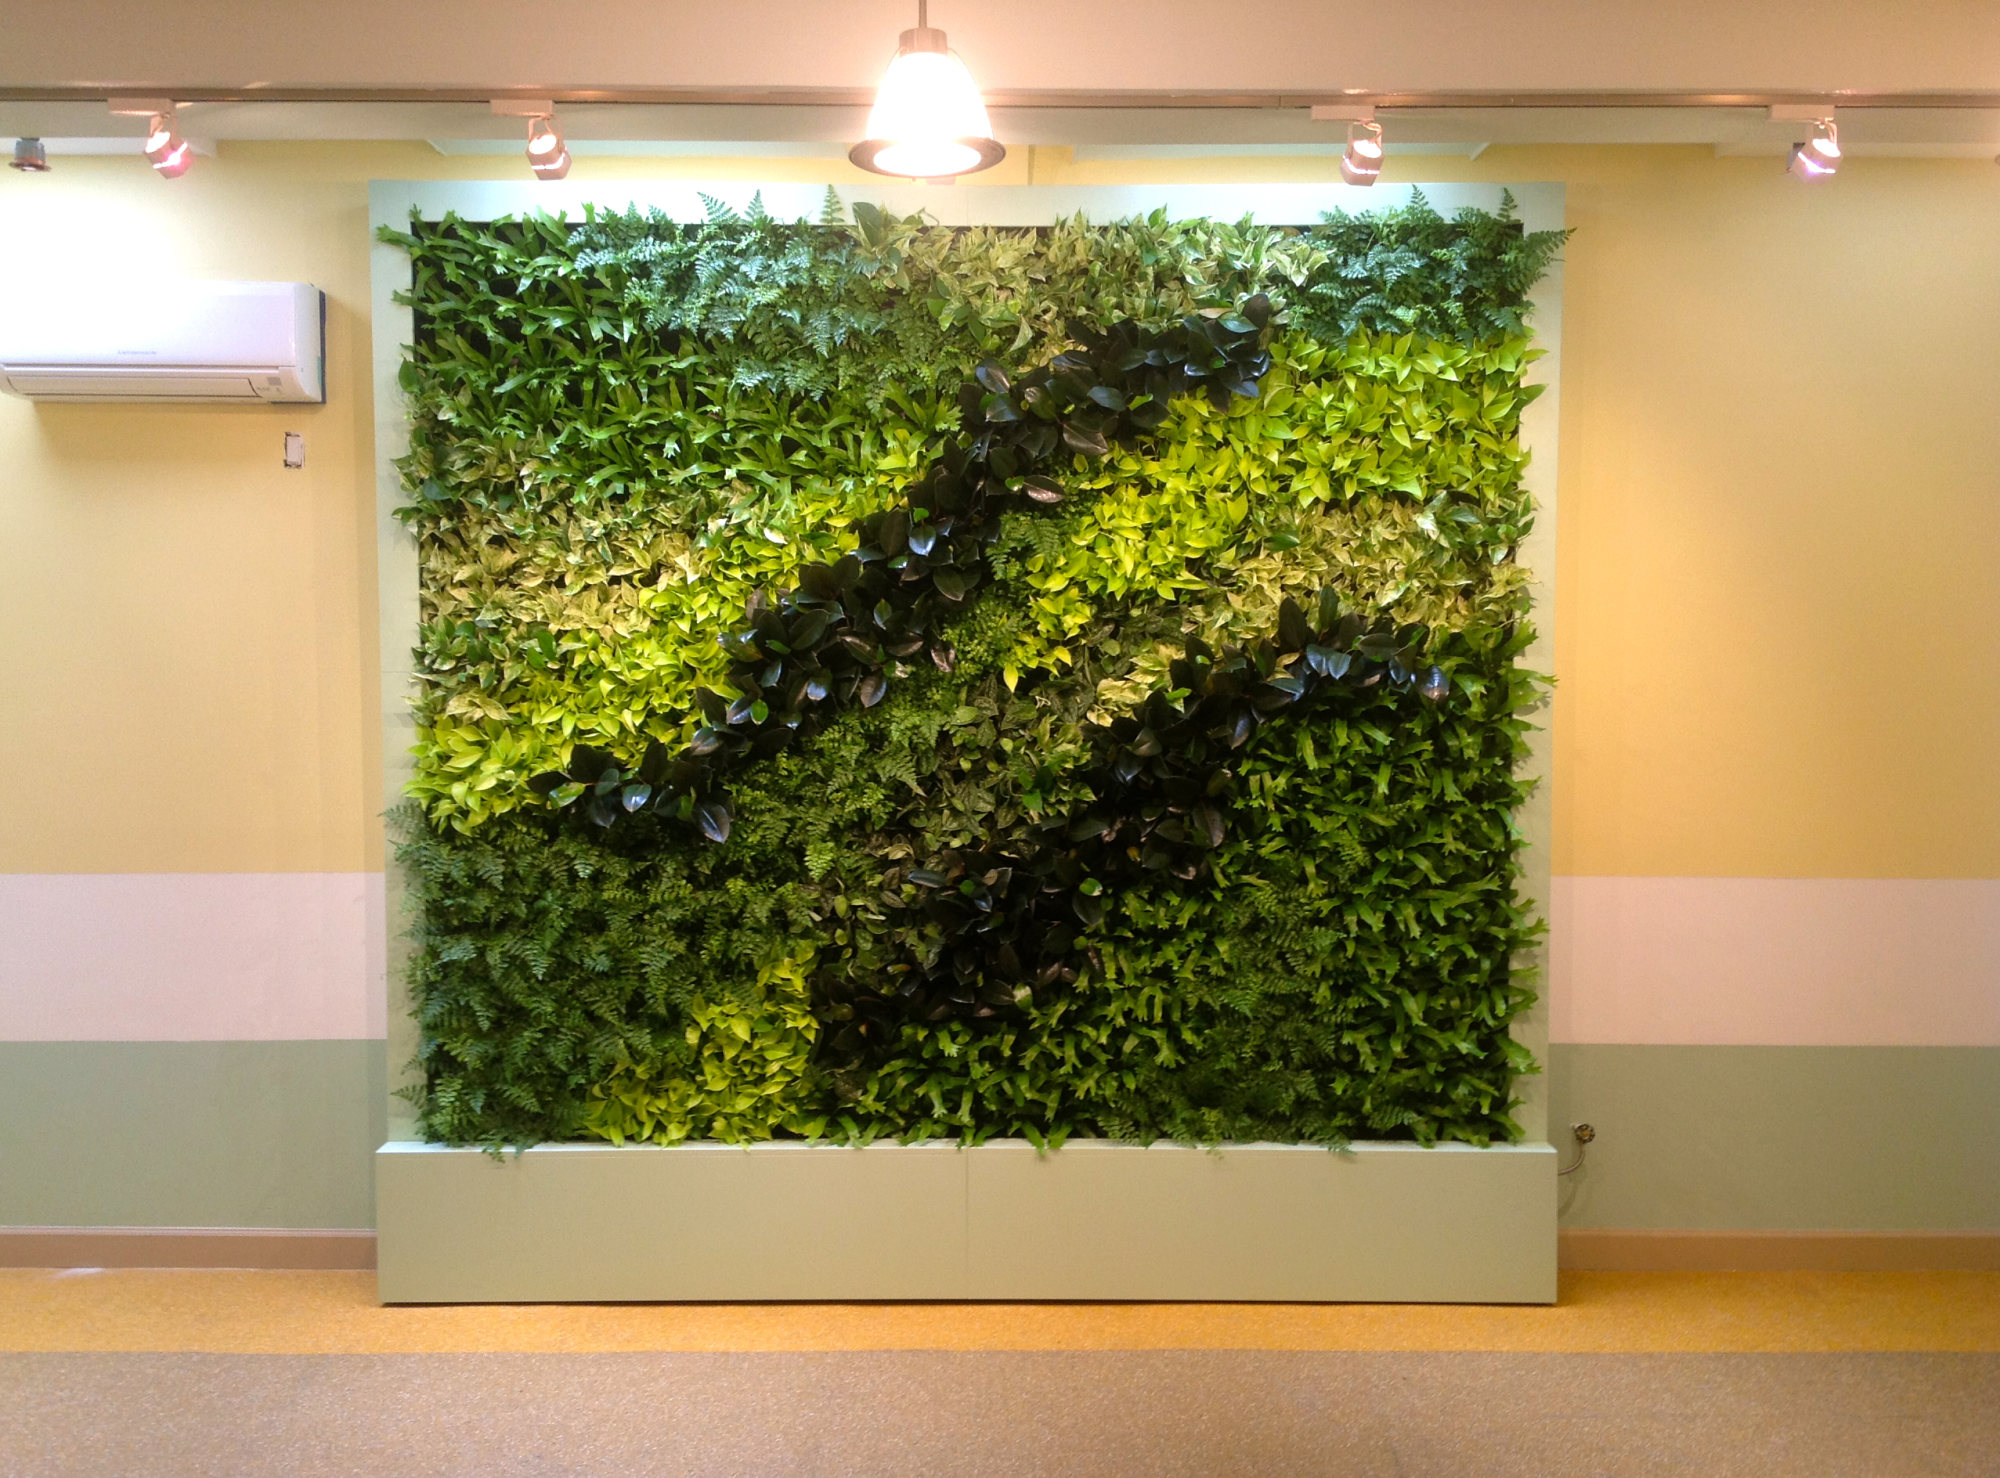 New Brooklyn Preschool Of Science Gets The Green Wall